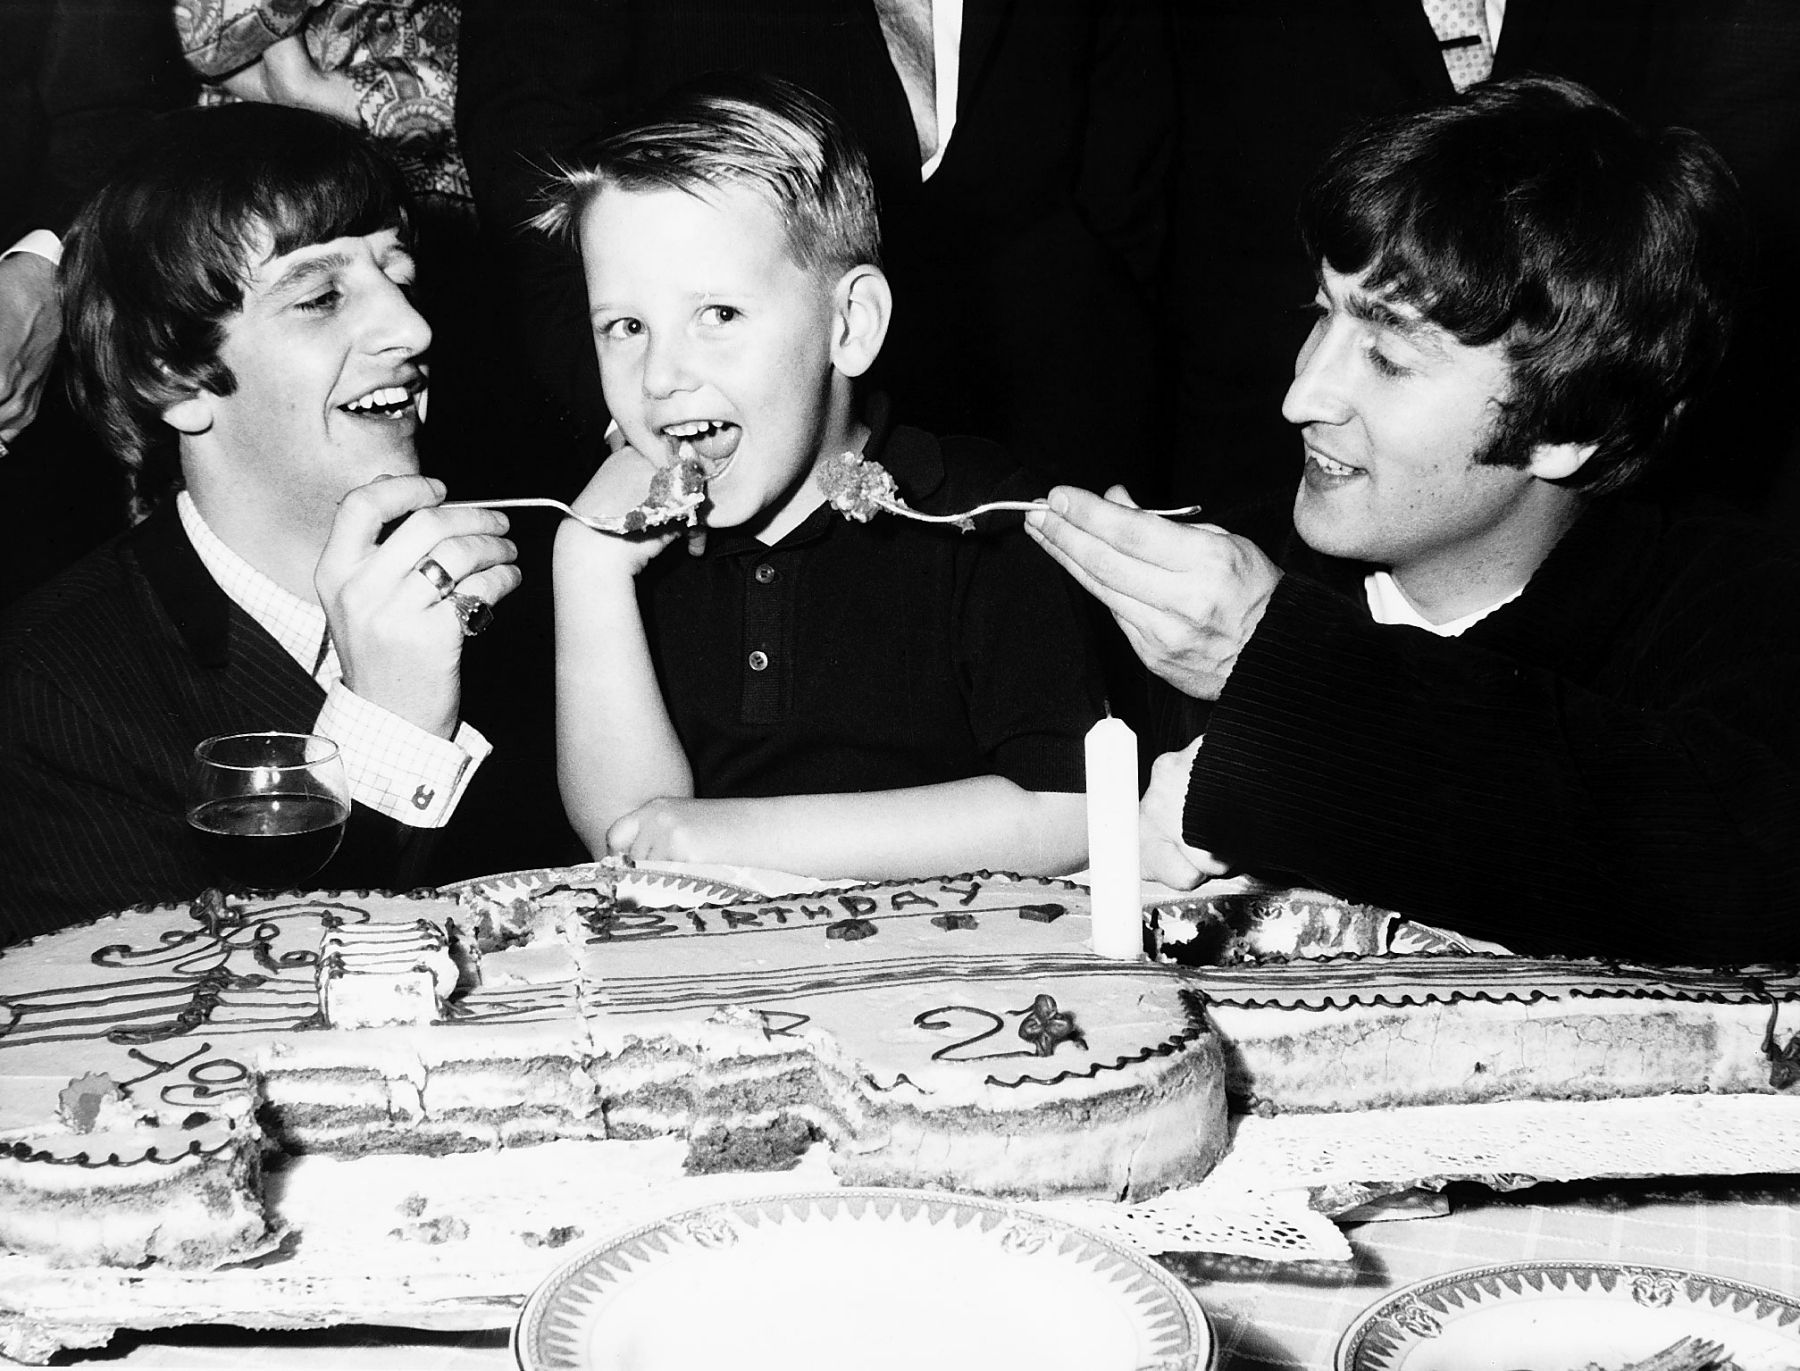 John Lennon And Ringo Starr Attend The Birthday Party Of